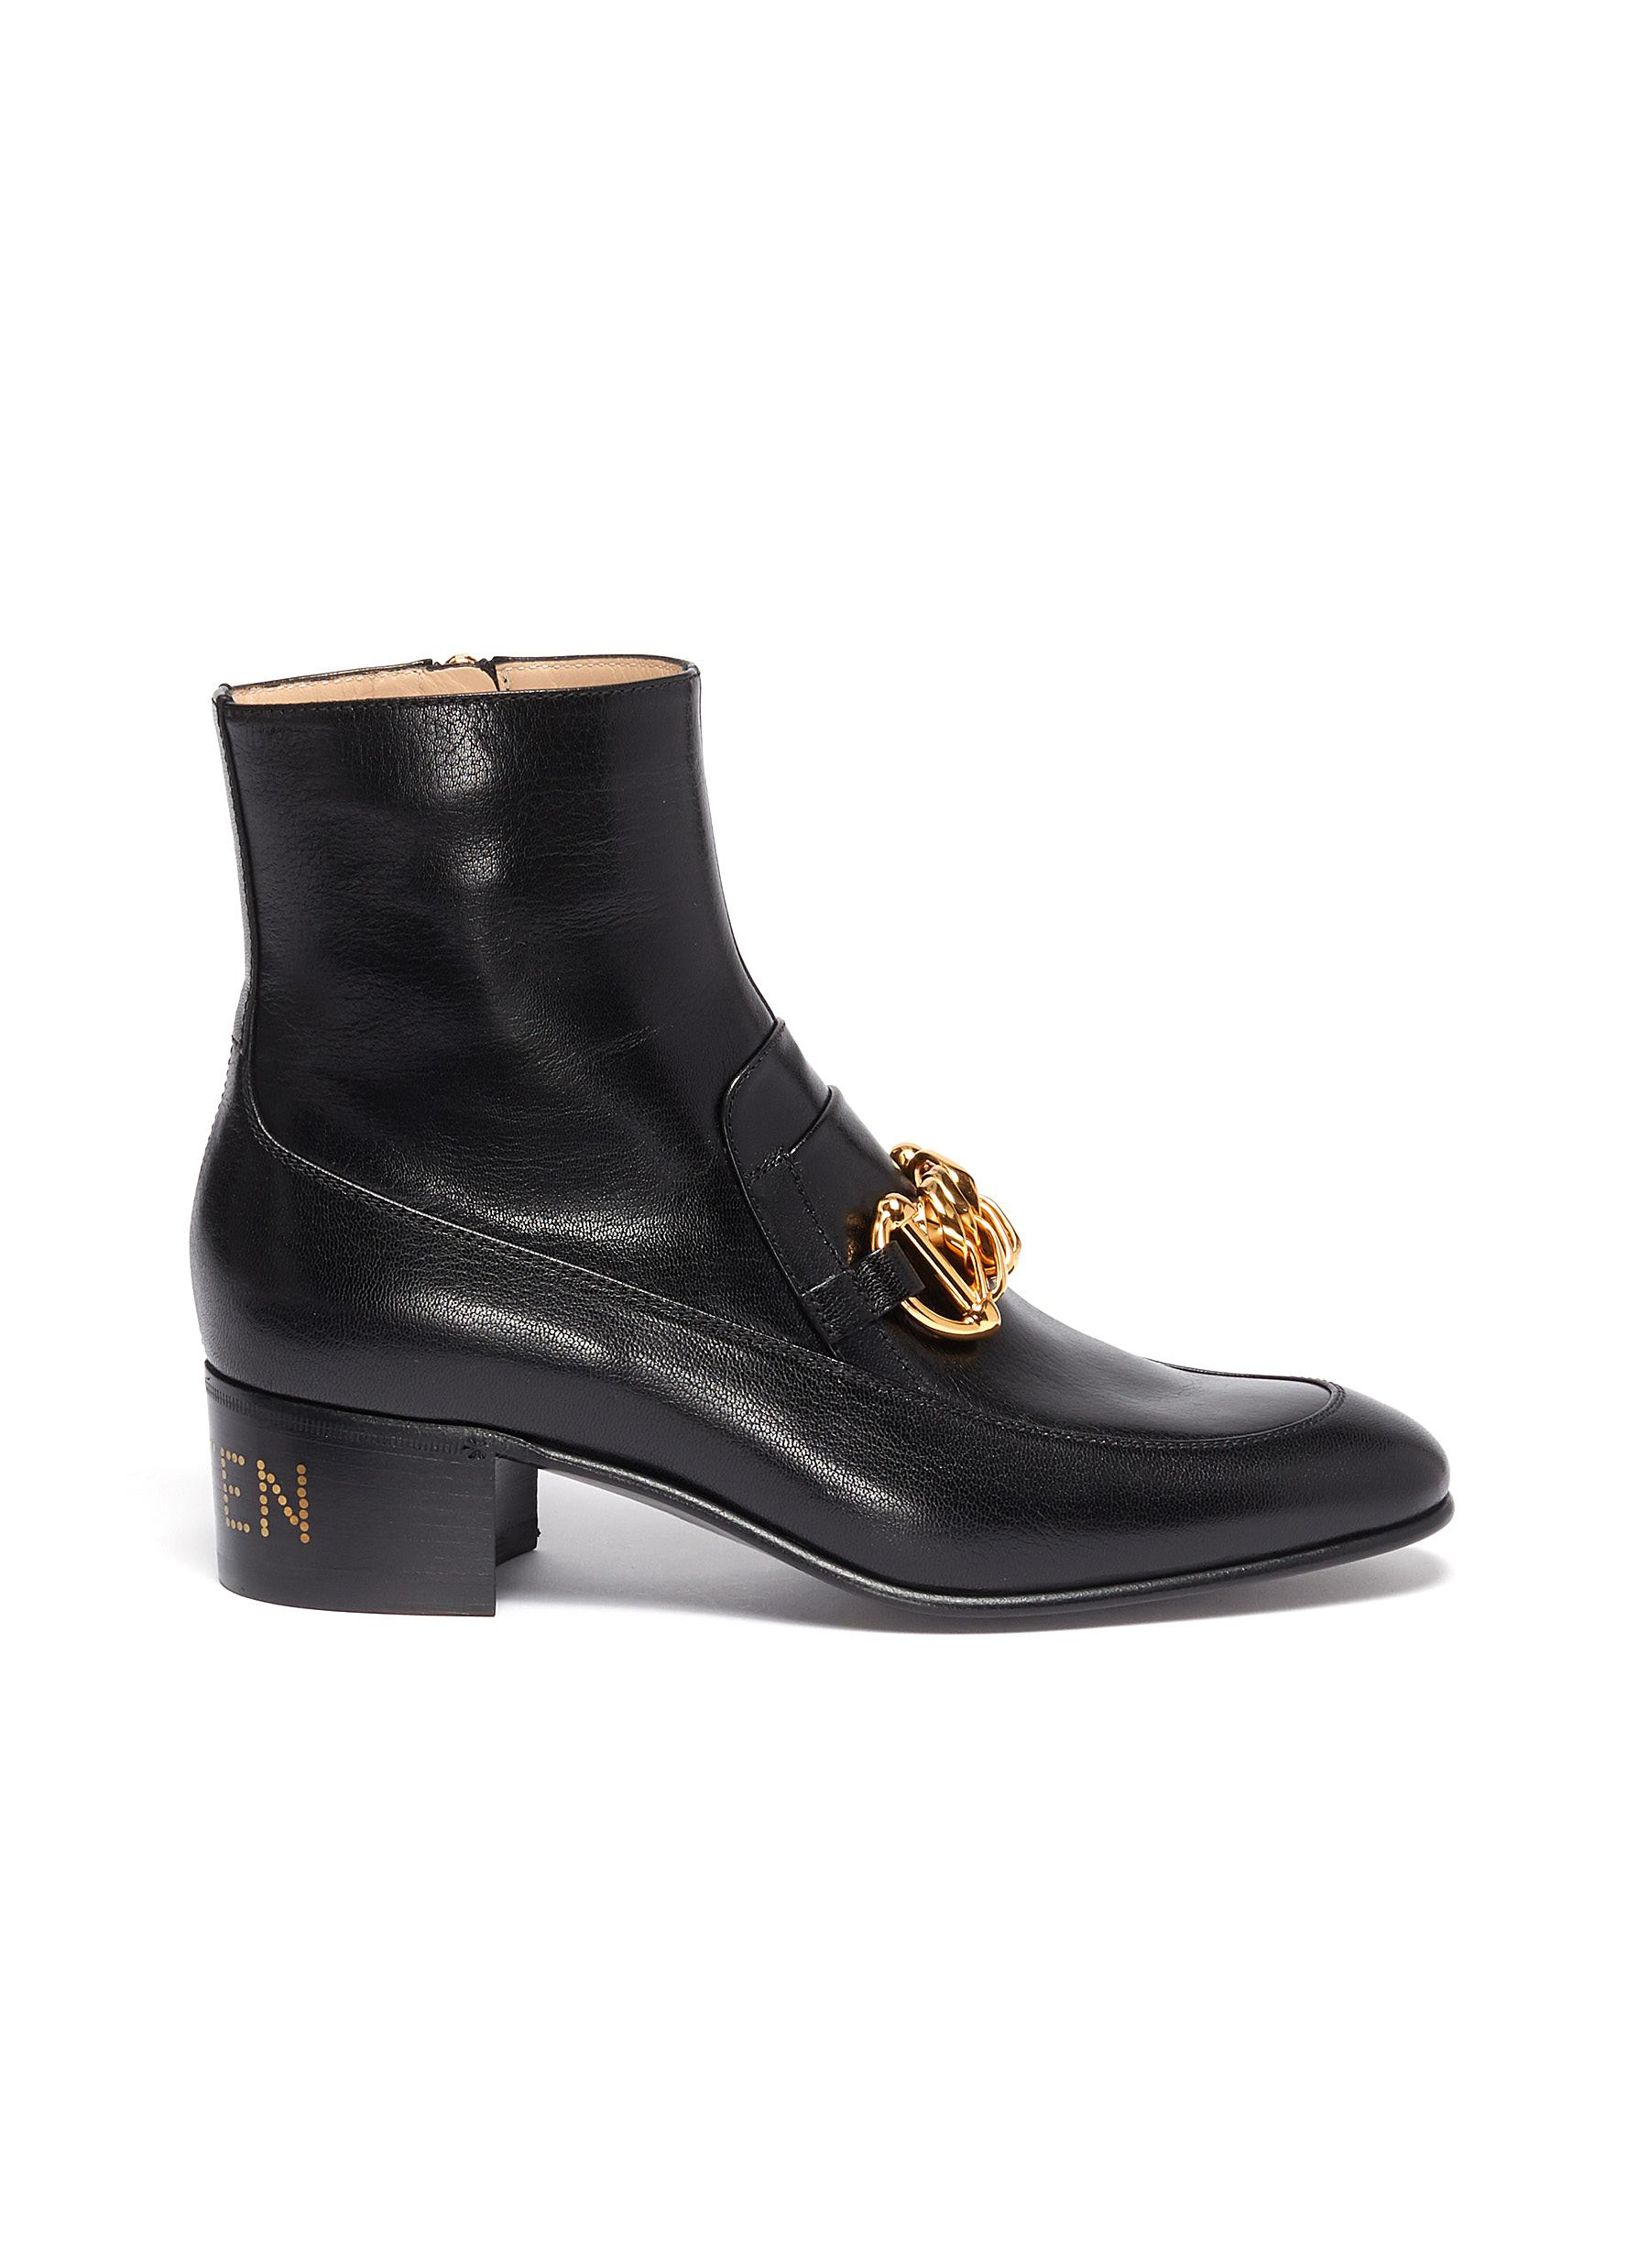 Chain clasp leather ankle boots by Gucci